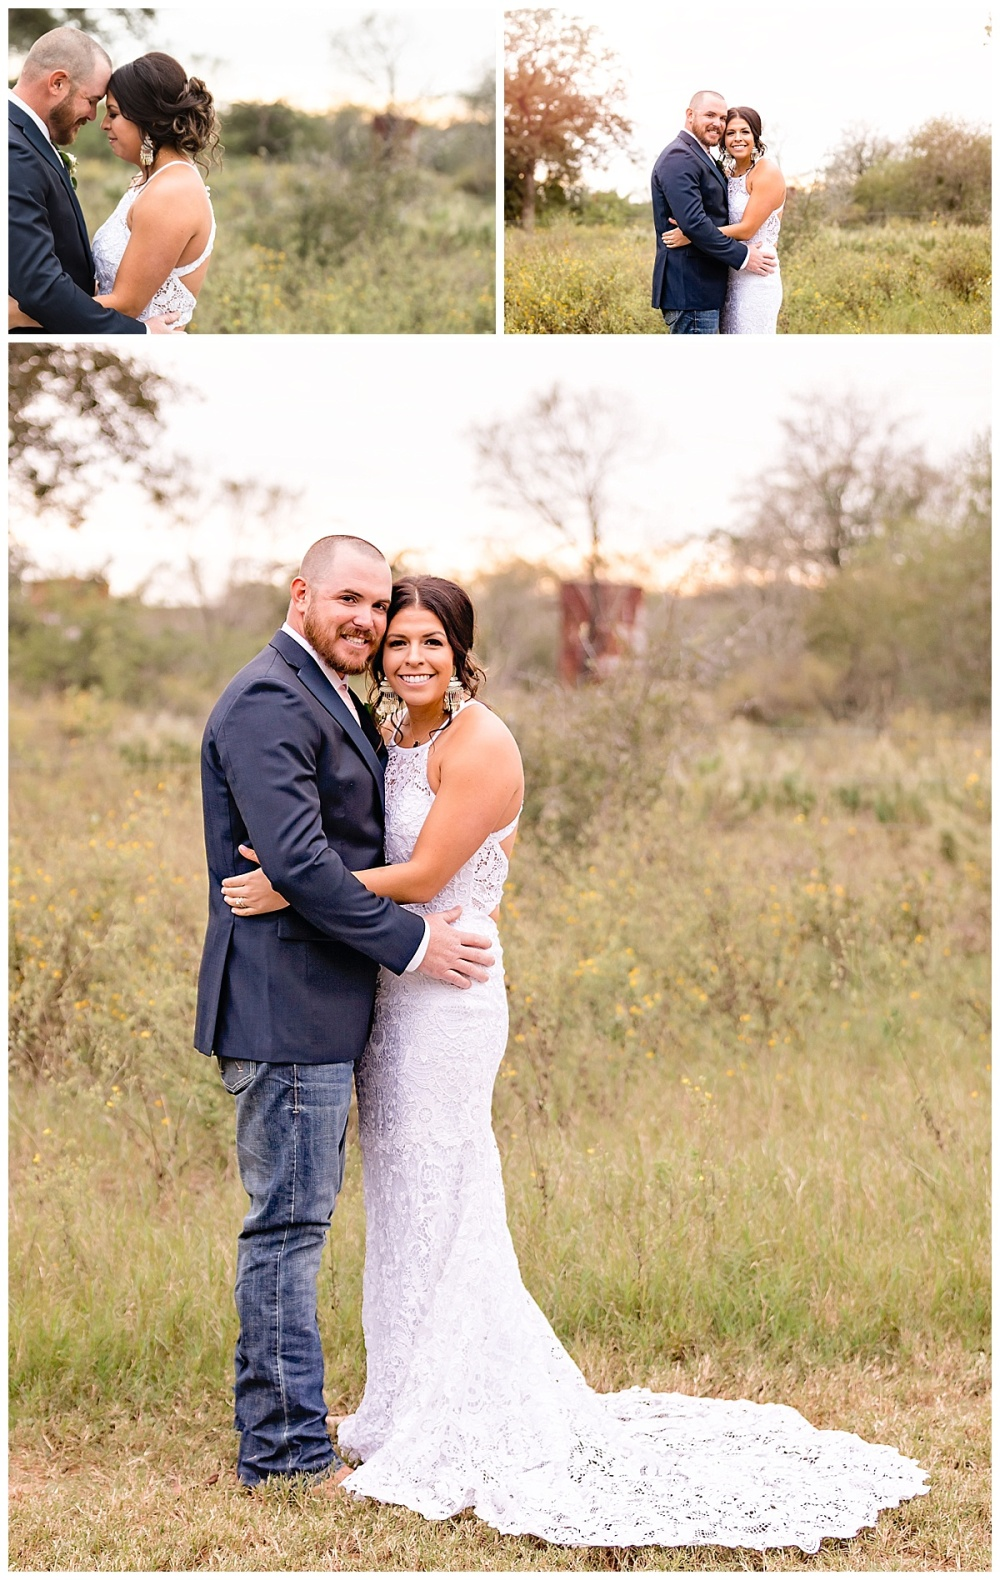 South-Texas-Wedding-Photographer-Rose-Gold-and-Navy-Theme-LaVernia-Bride-Groom-Carly-Barton-Photography_0070